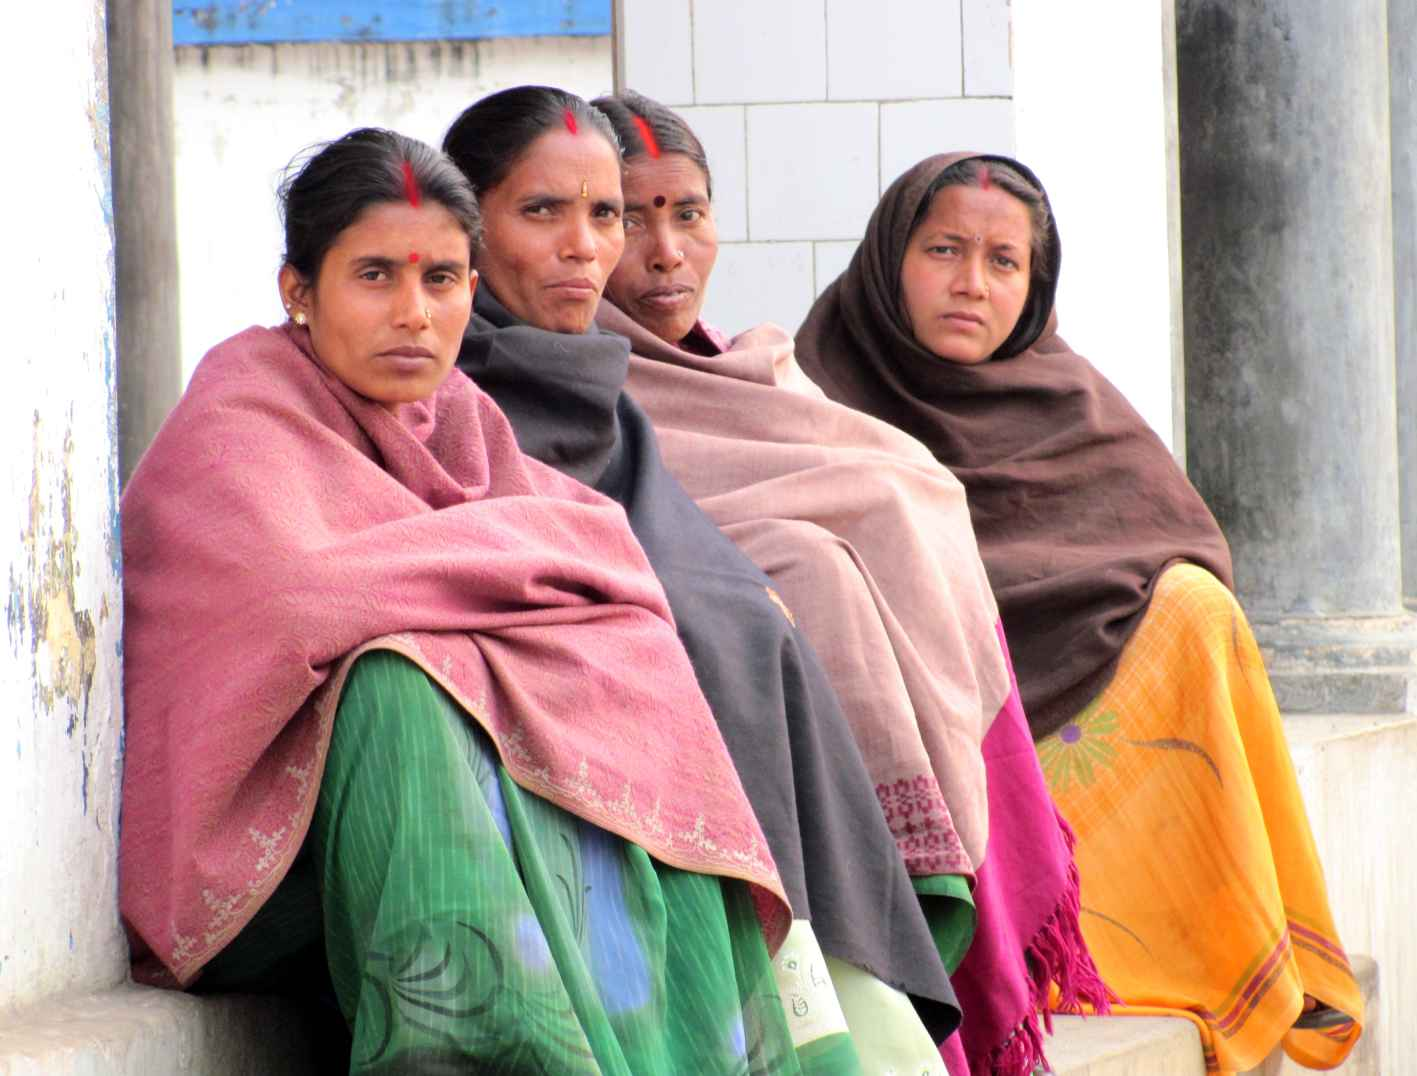 How Did COVID-19 Impact Reproductive Health Services In India?